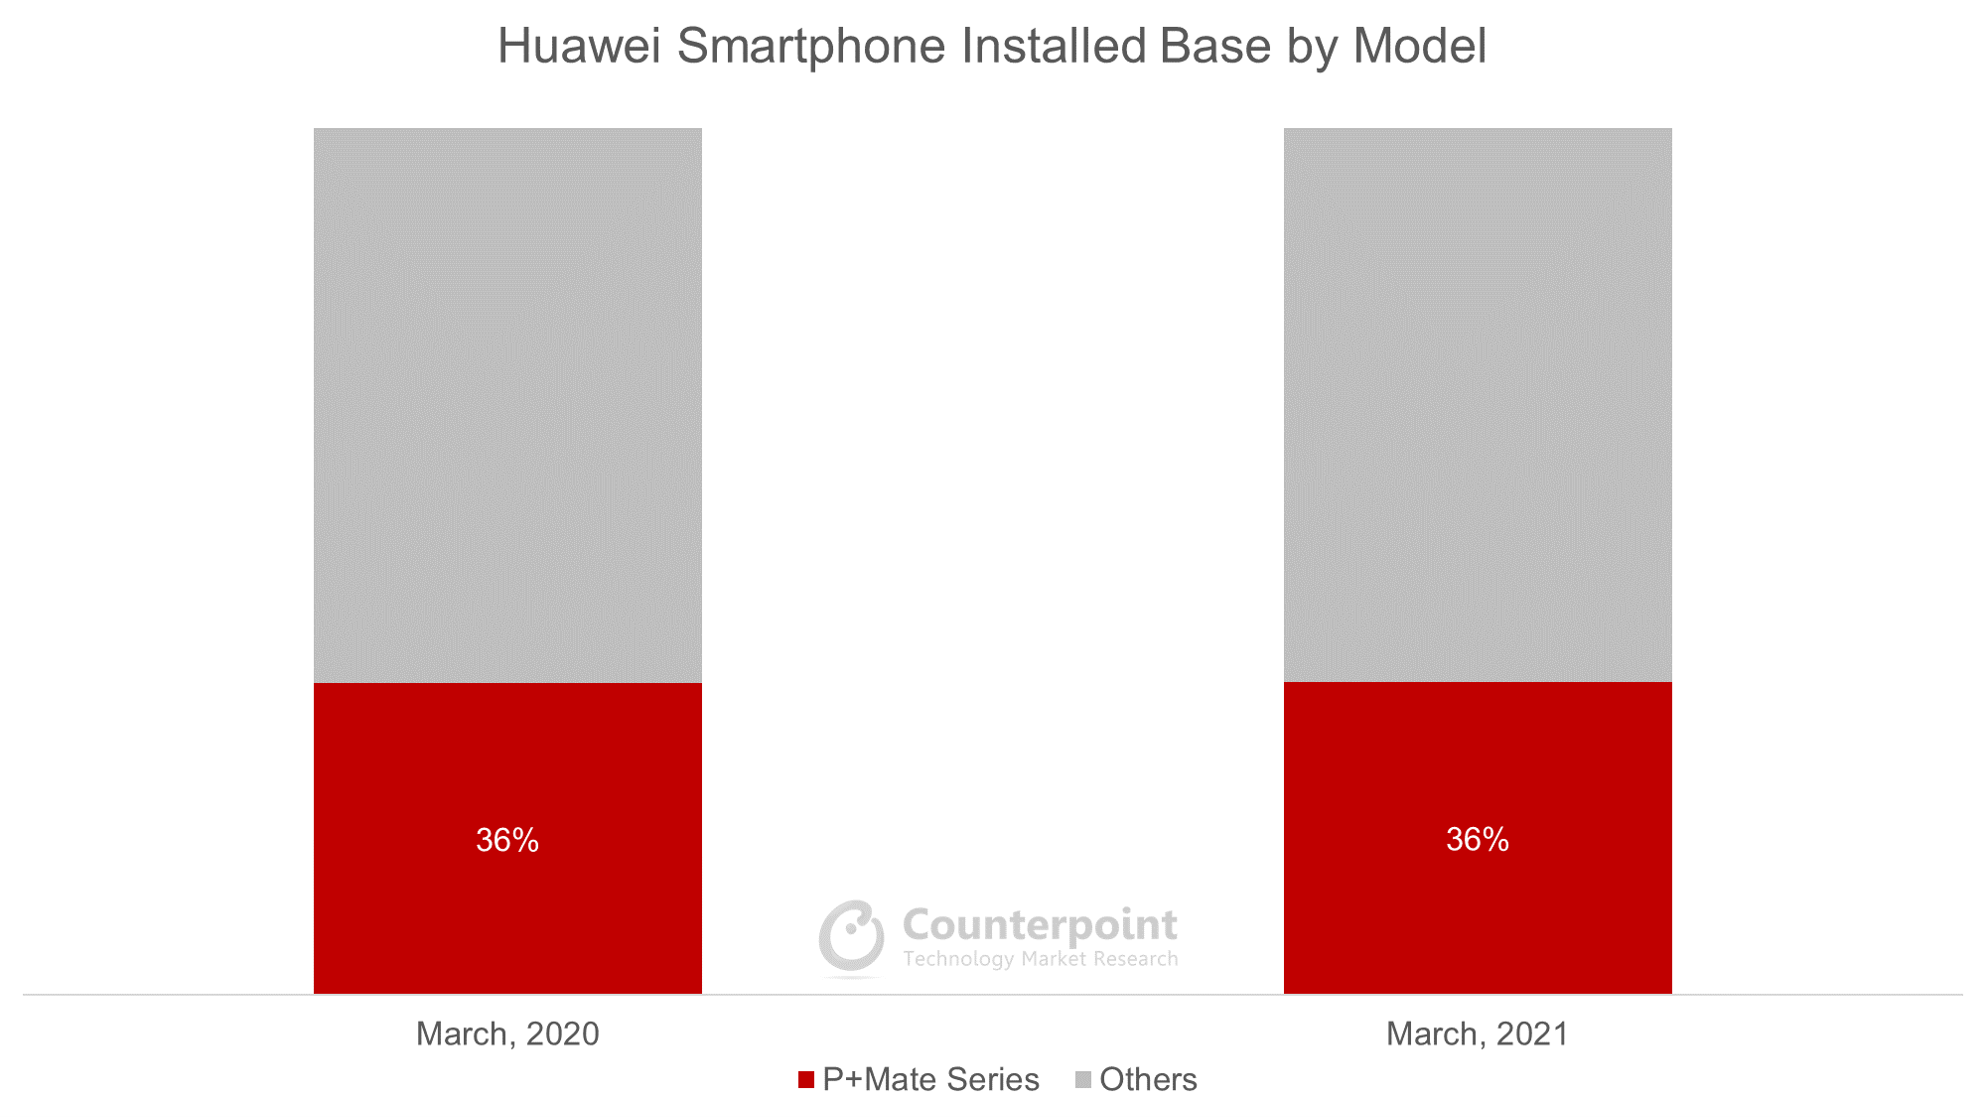 Counterpoint Research Huawei Smartphone Installed Base by Model